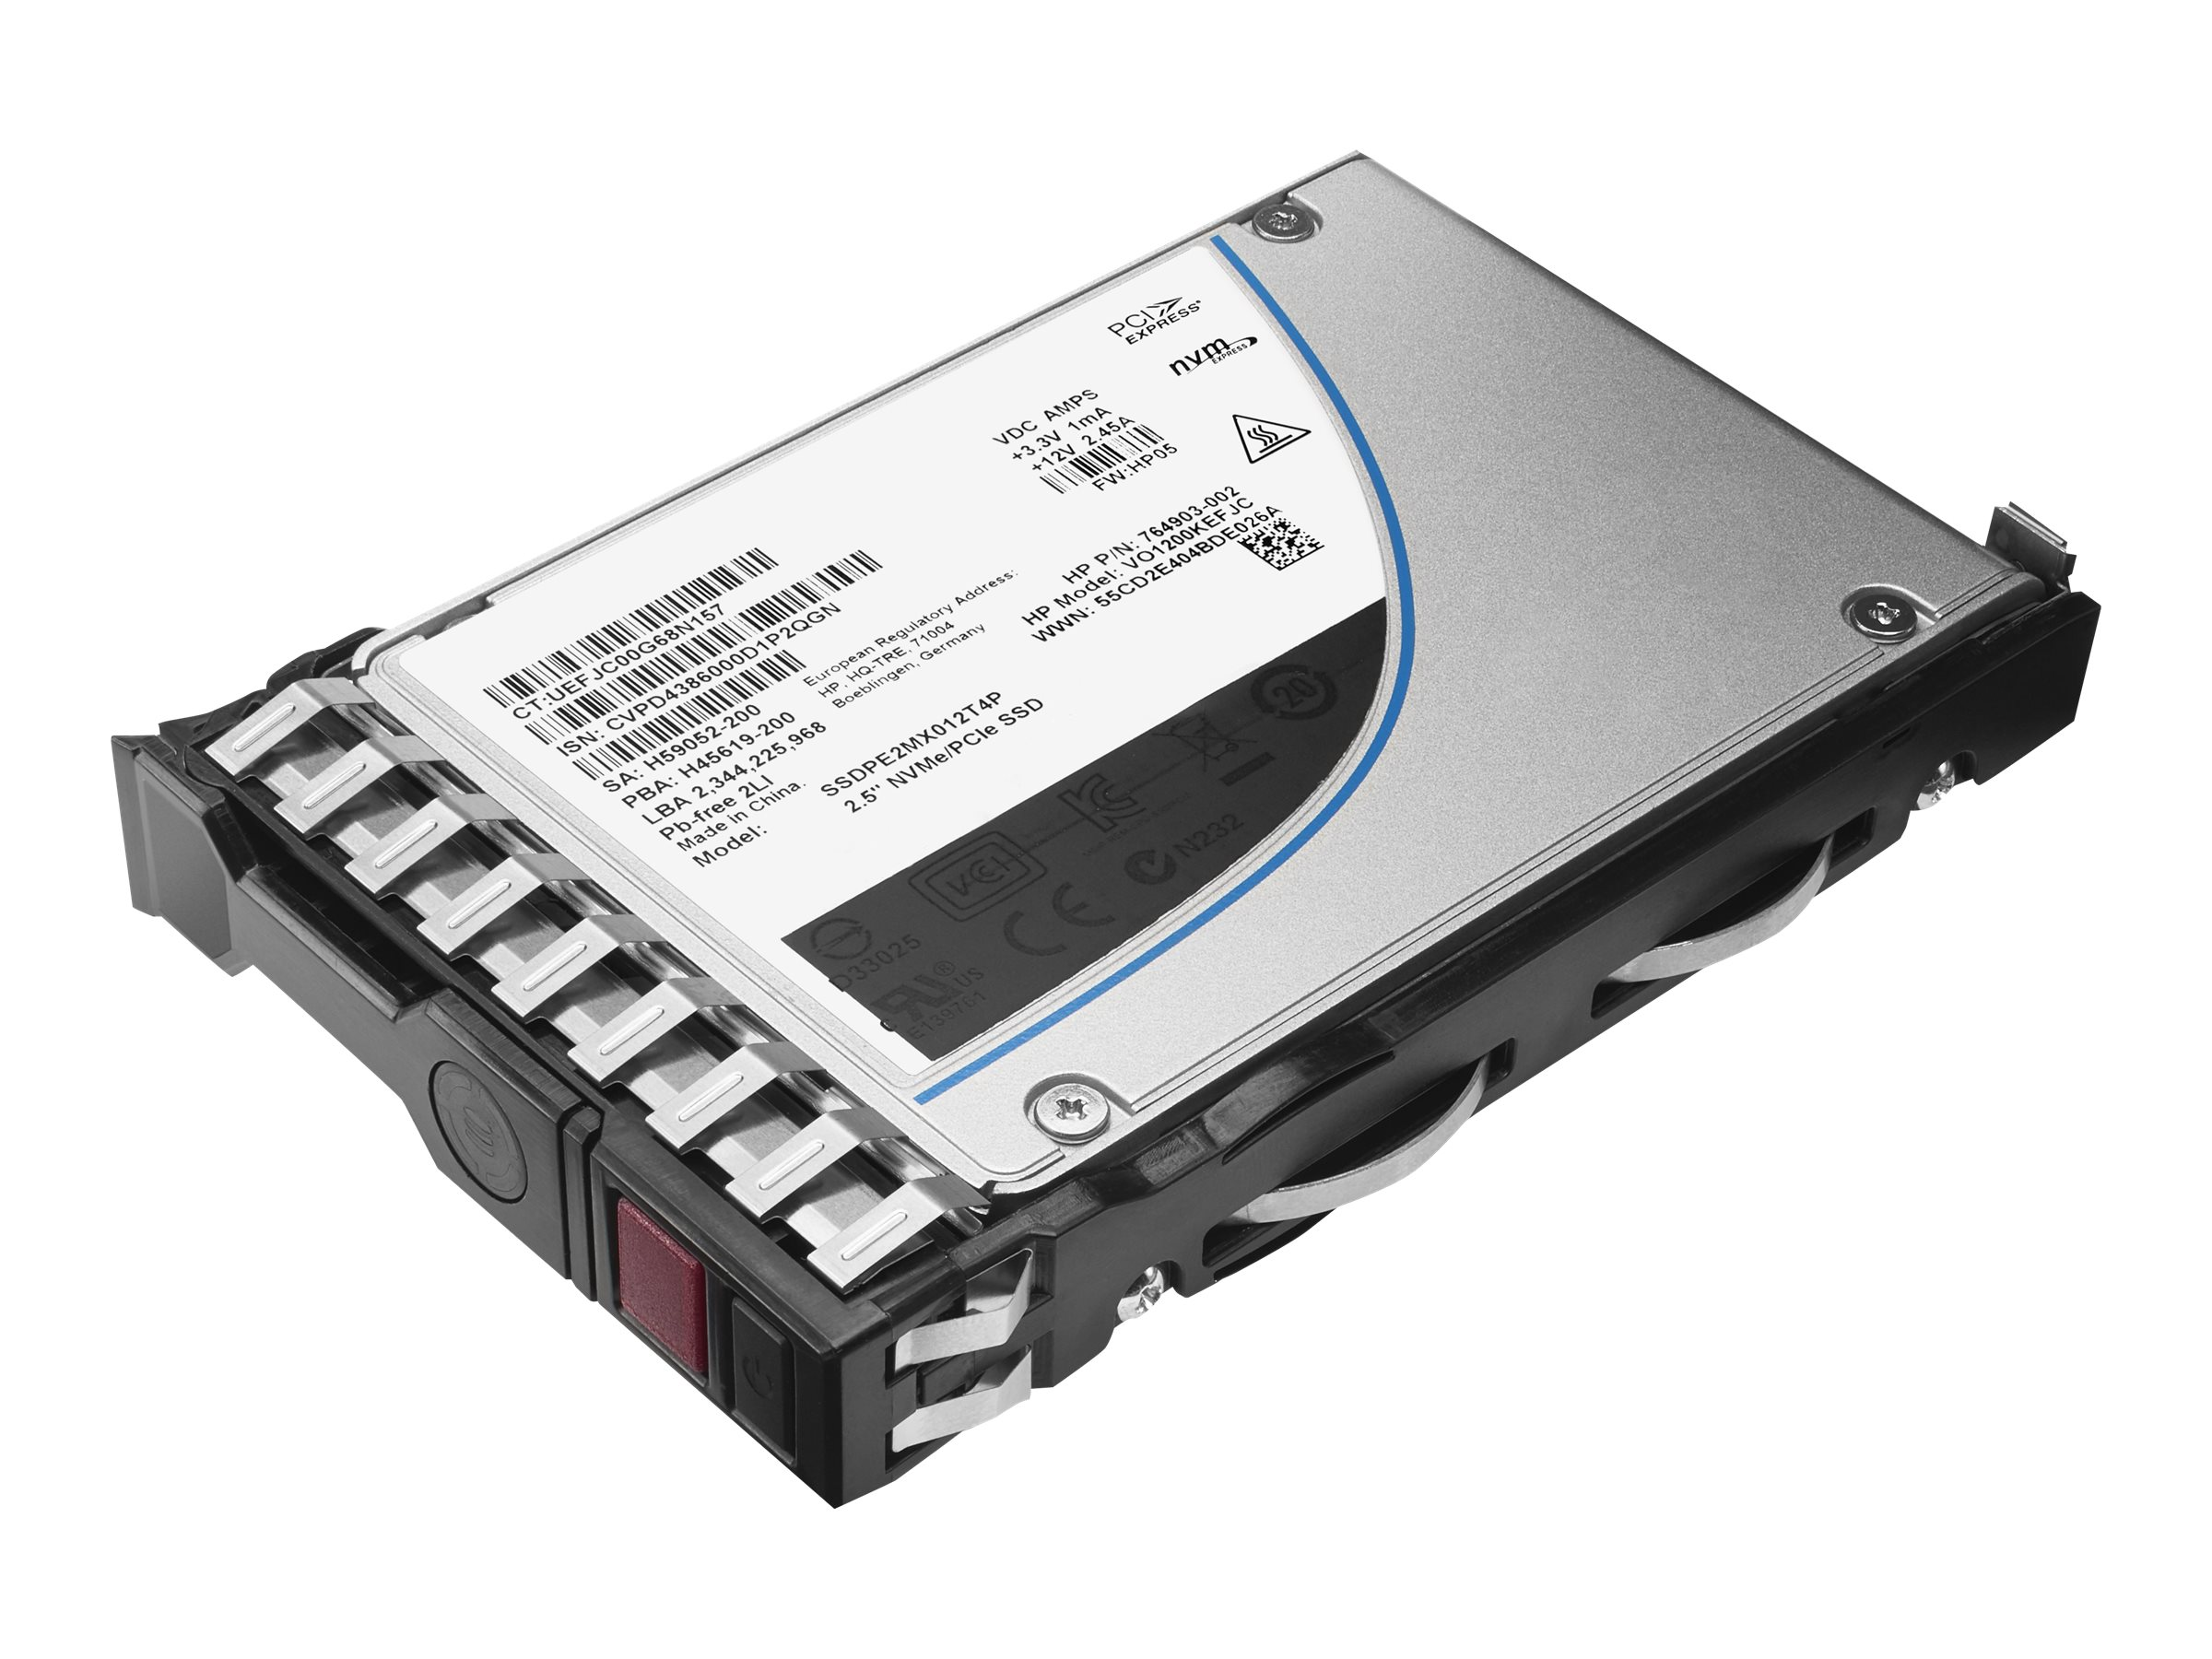 HPE 960GB SATA 6Gb s LE 2.5 SC EL G1 Solid State Drive, 756601-B21, 26139537, Solid State Drives - Internal